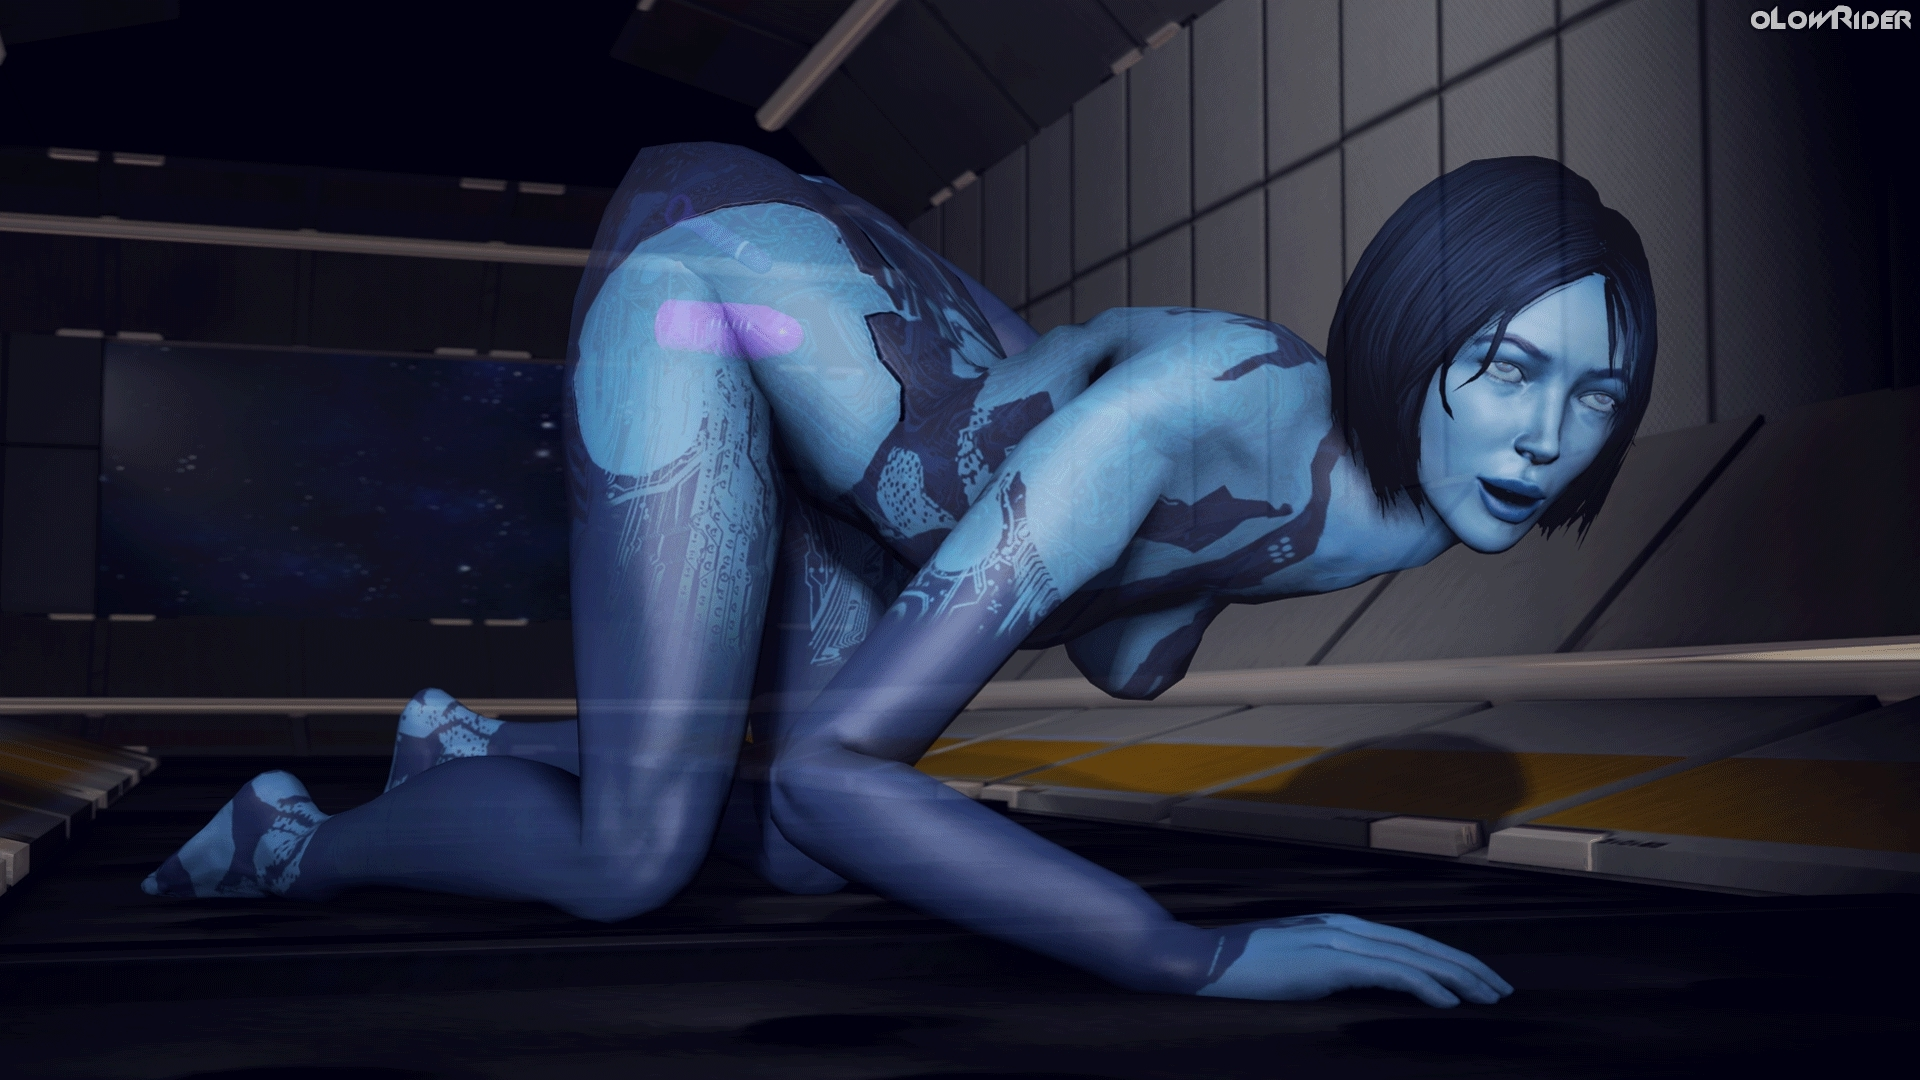 Cortana porn video fucked ameteur bitch